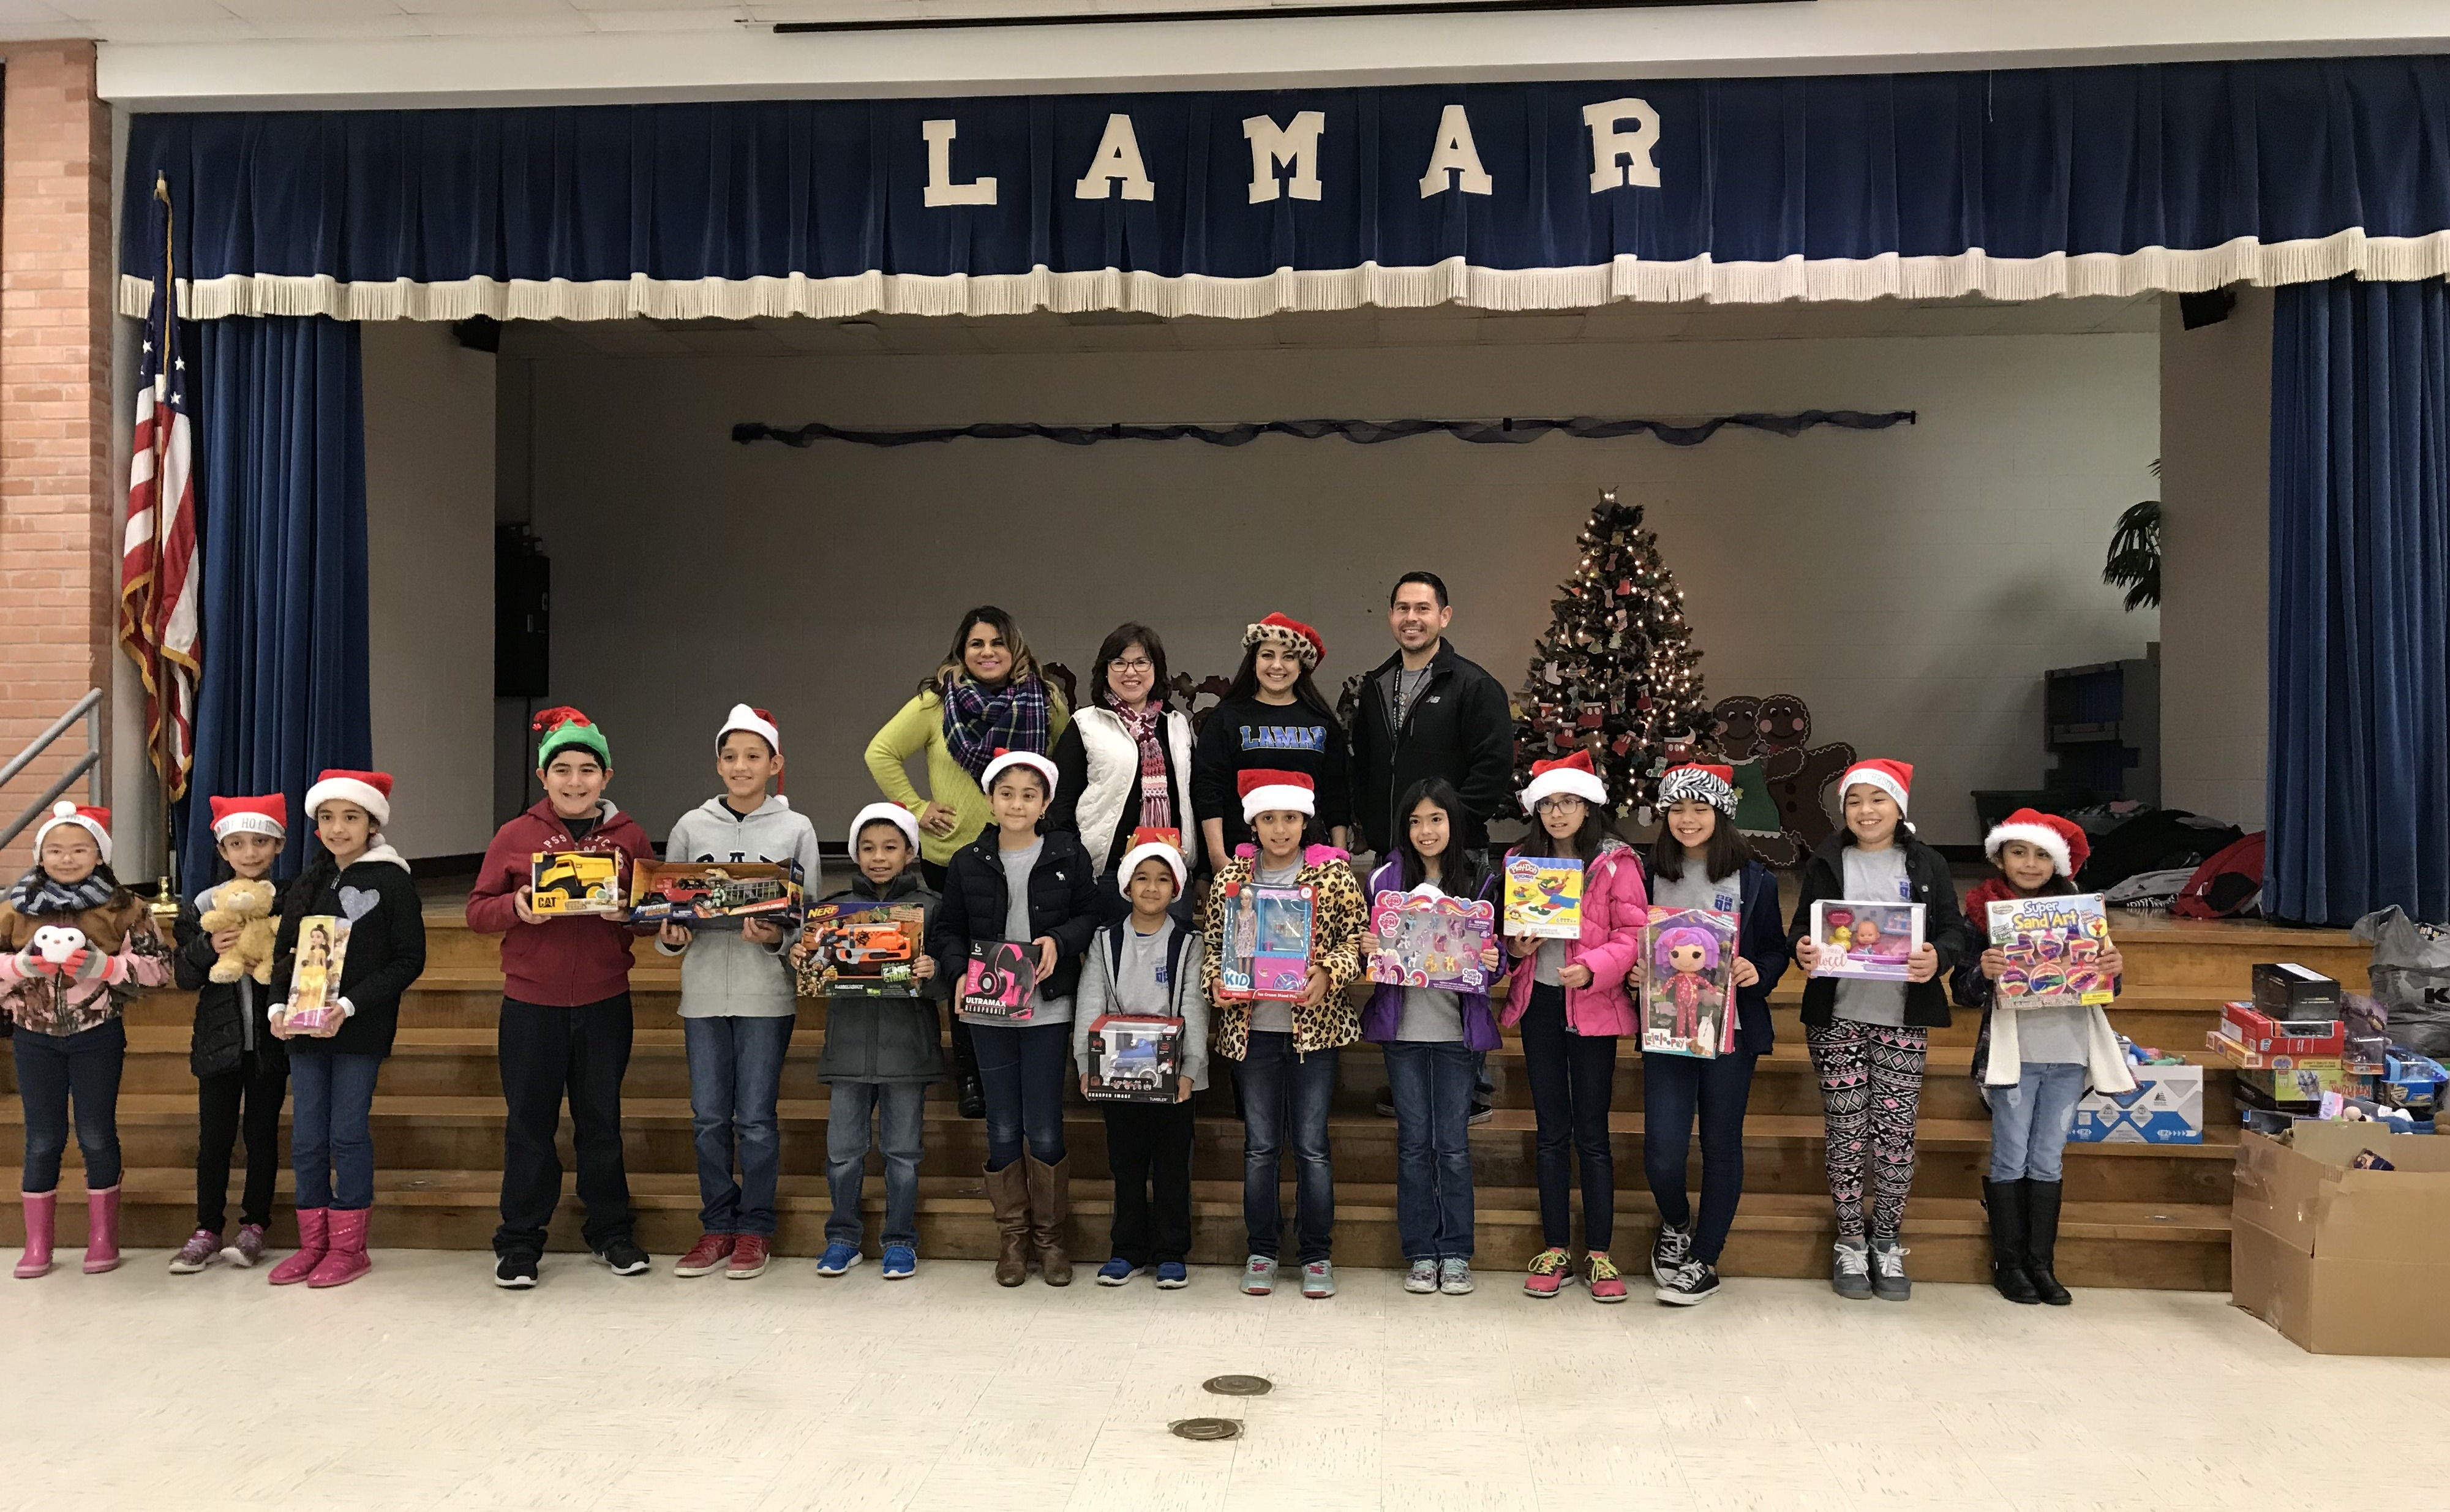 Lamar Elementary students donate over 250 toys